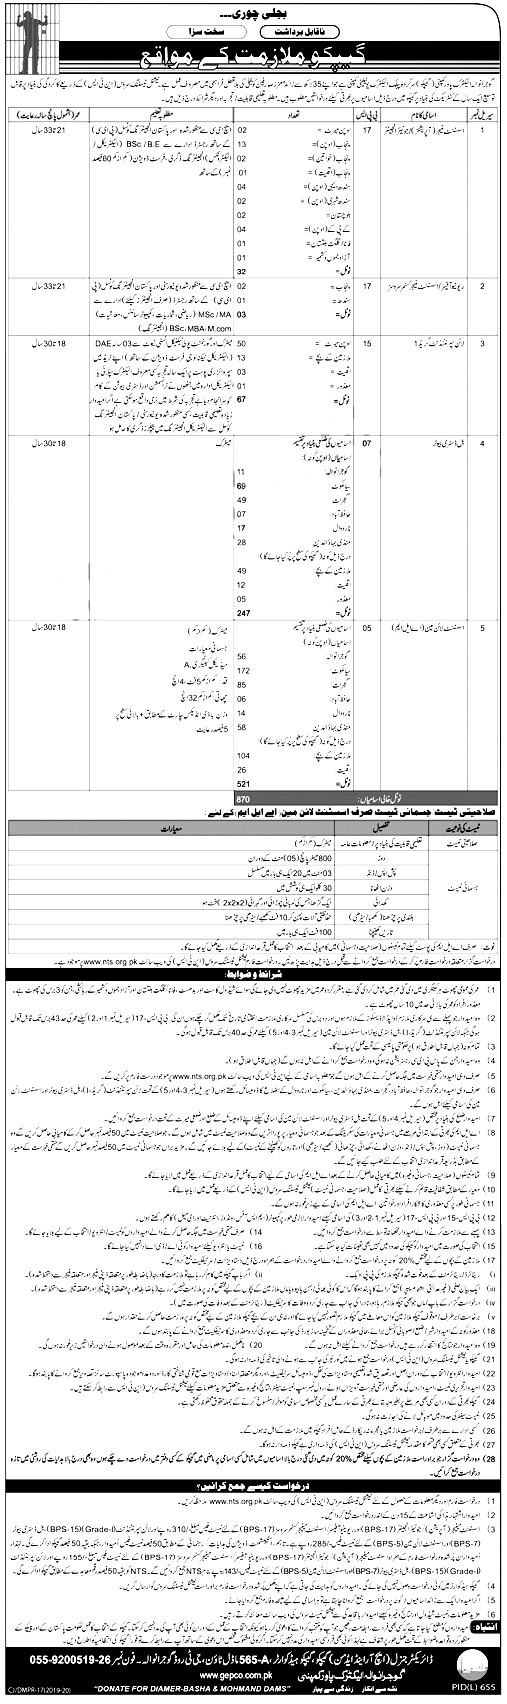 Gujranwala Electric Power Company NTS Jobs 2019 Application Form Roll No Slip Download